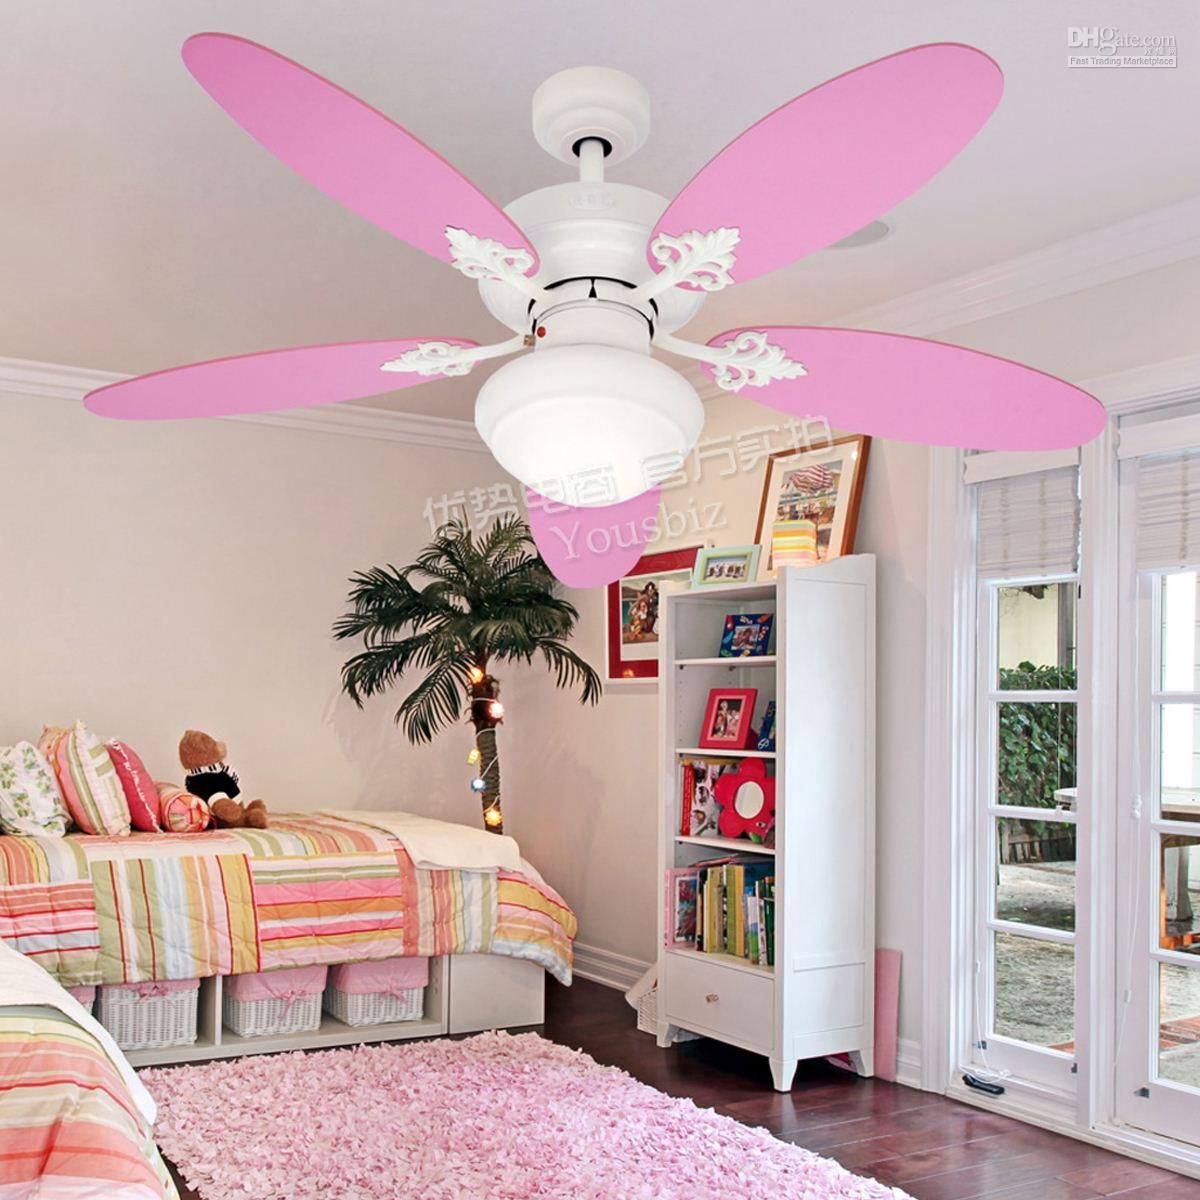 pink ceiling fans with lights for teenage girl bedroom #interior